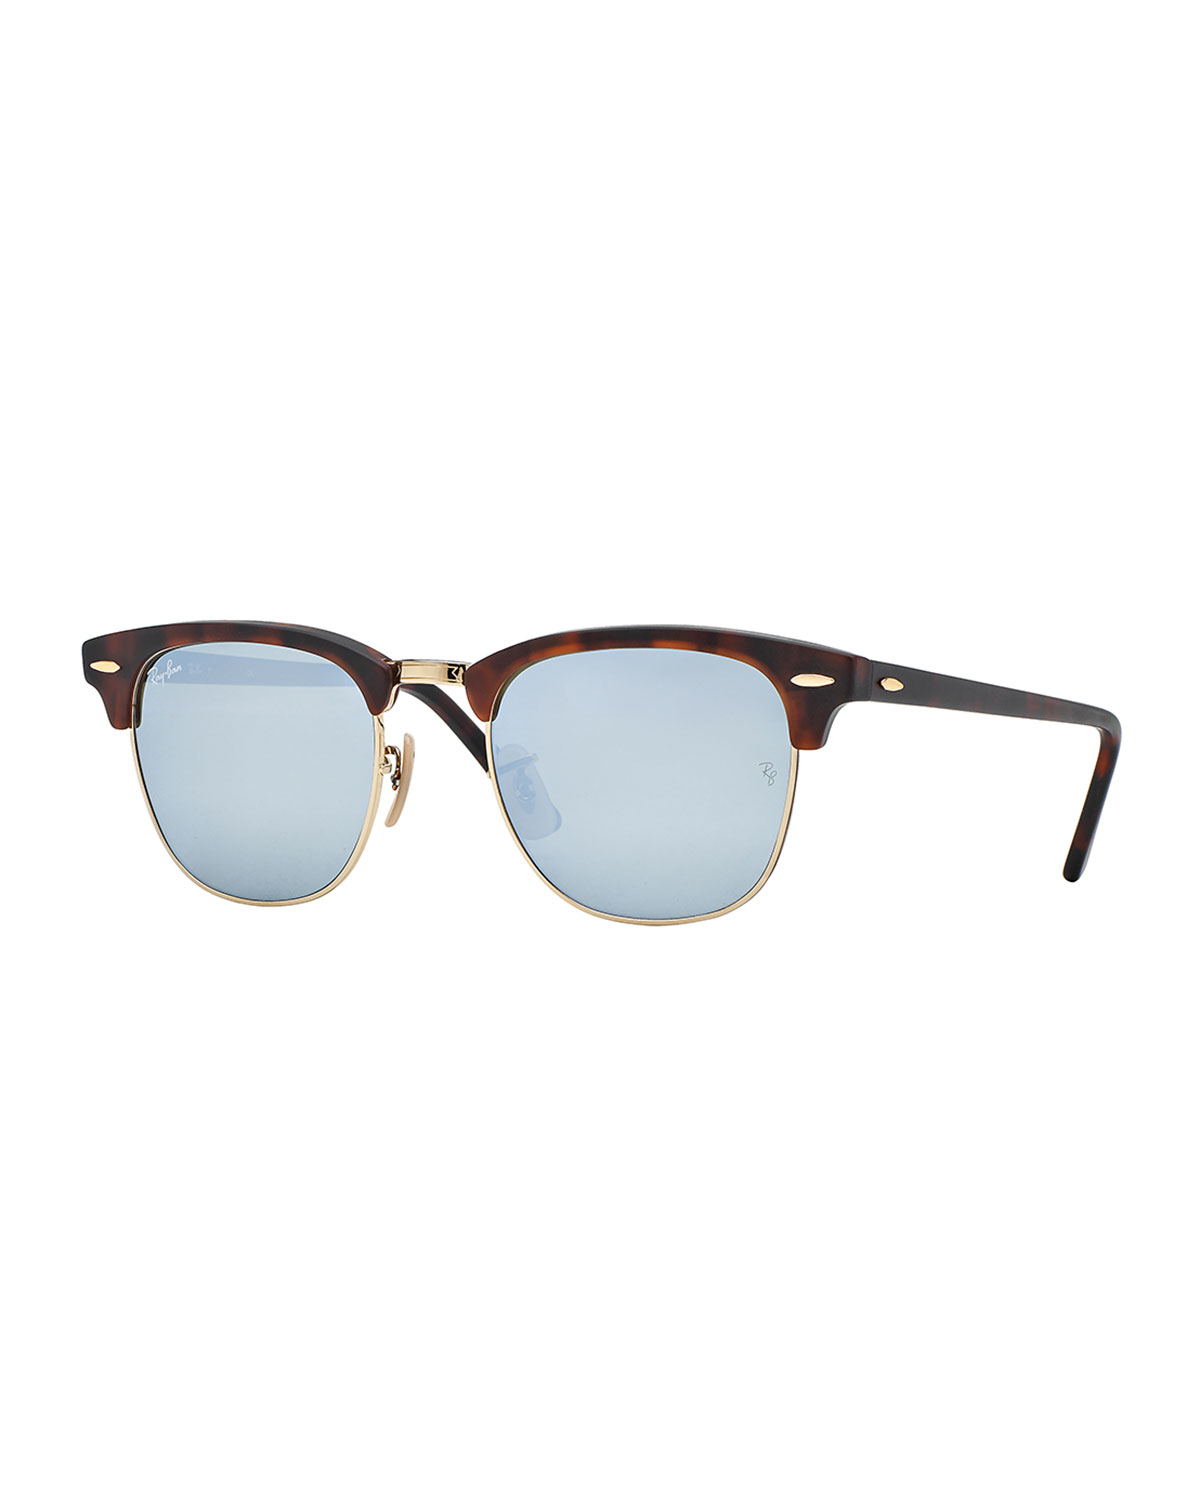 Ray-ban Clubmaster Sunglasses With Silver Mirror Lens in ...